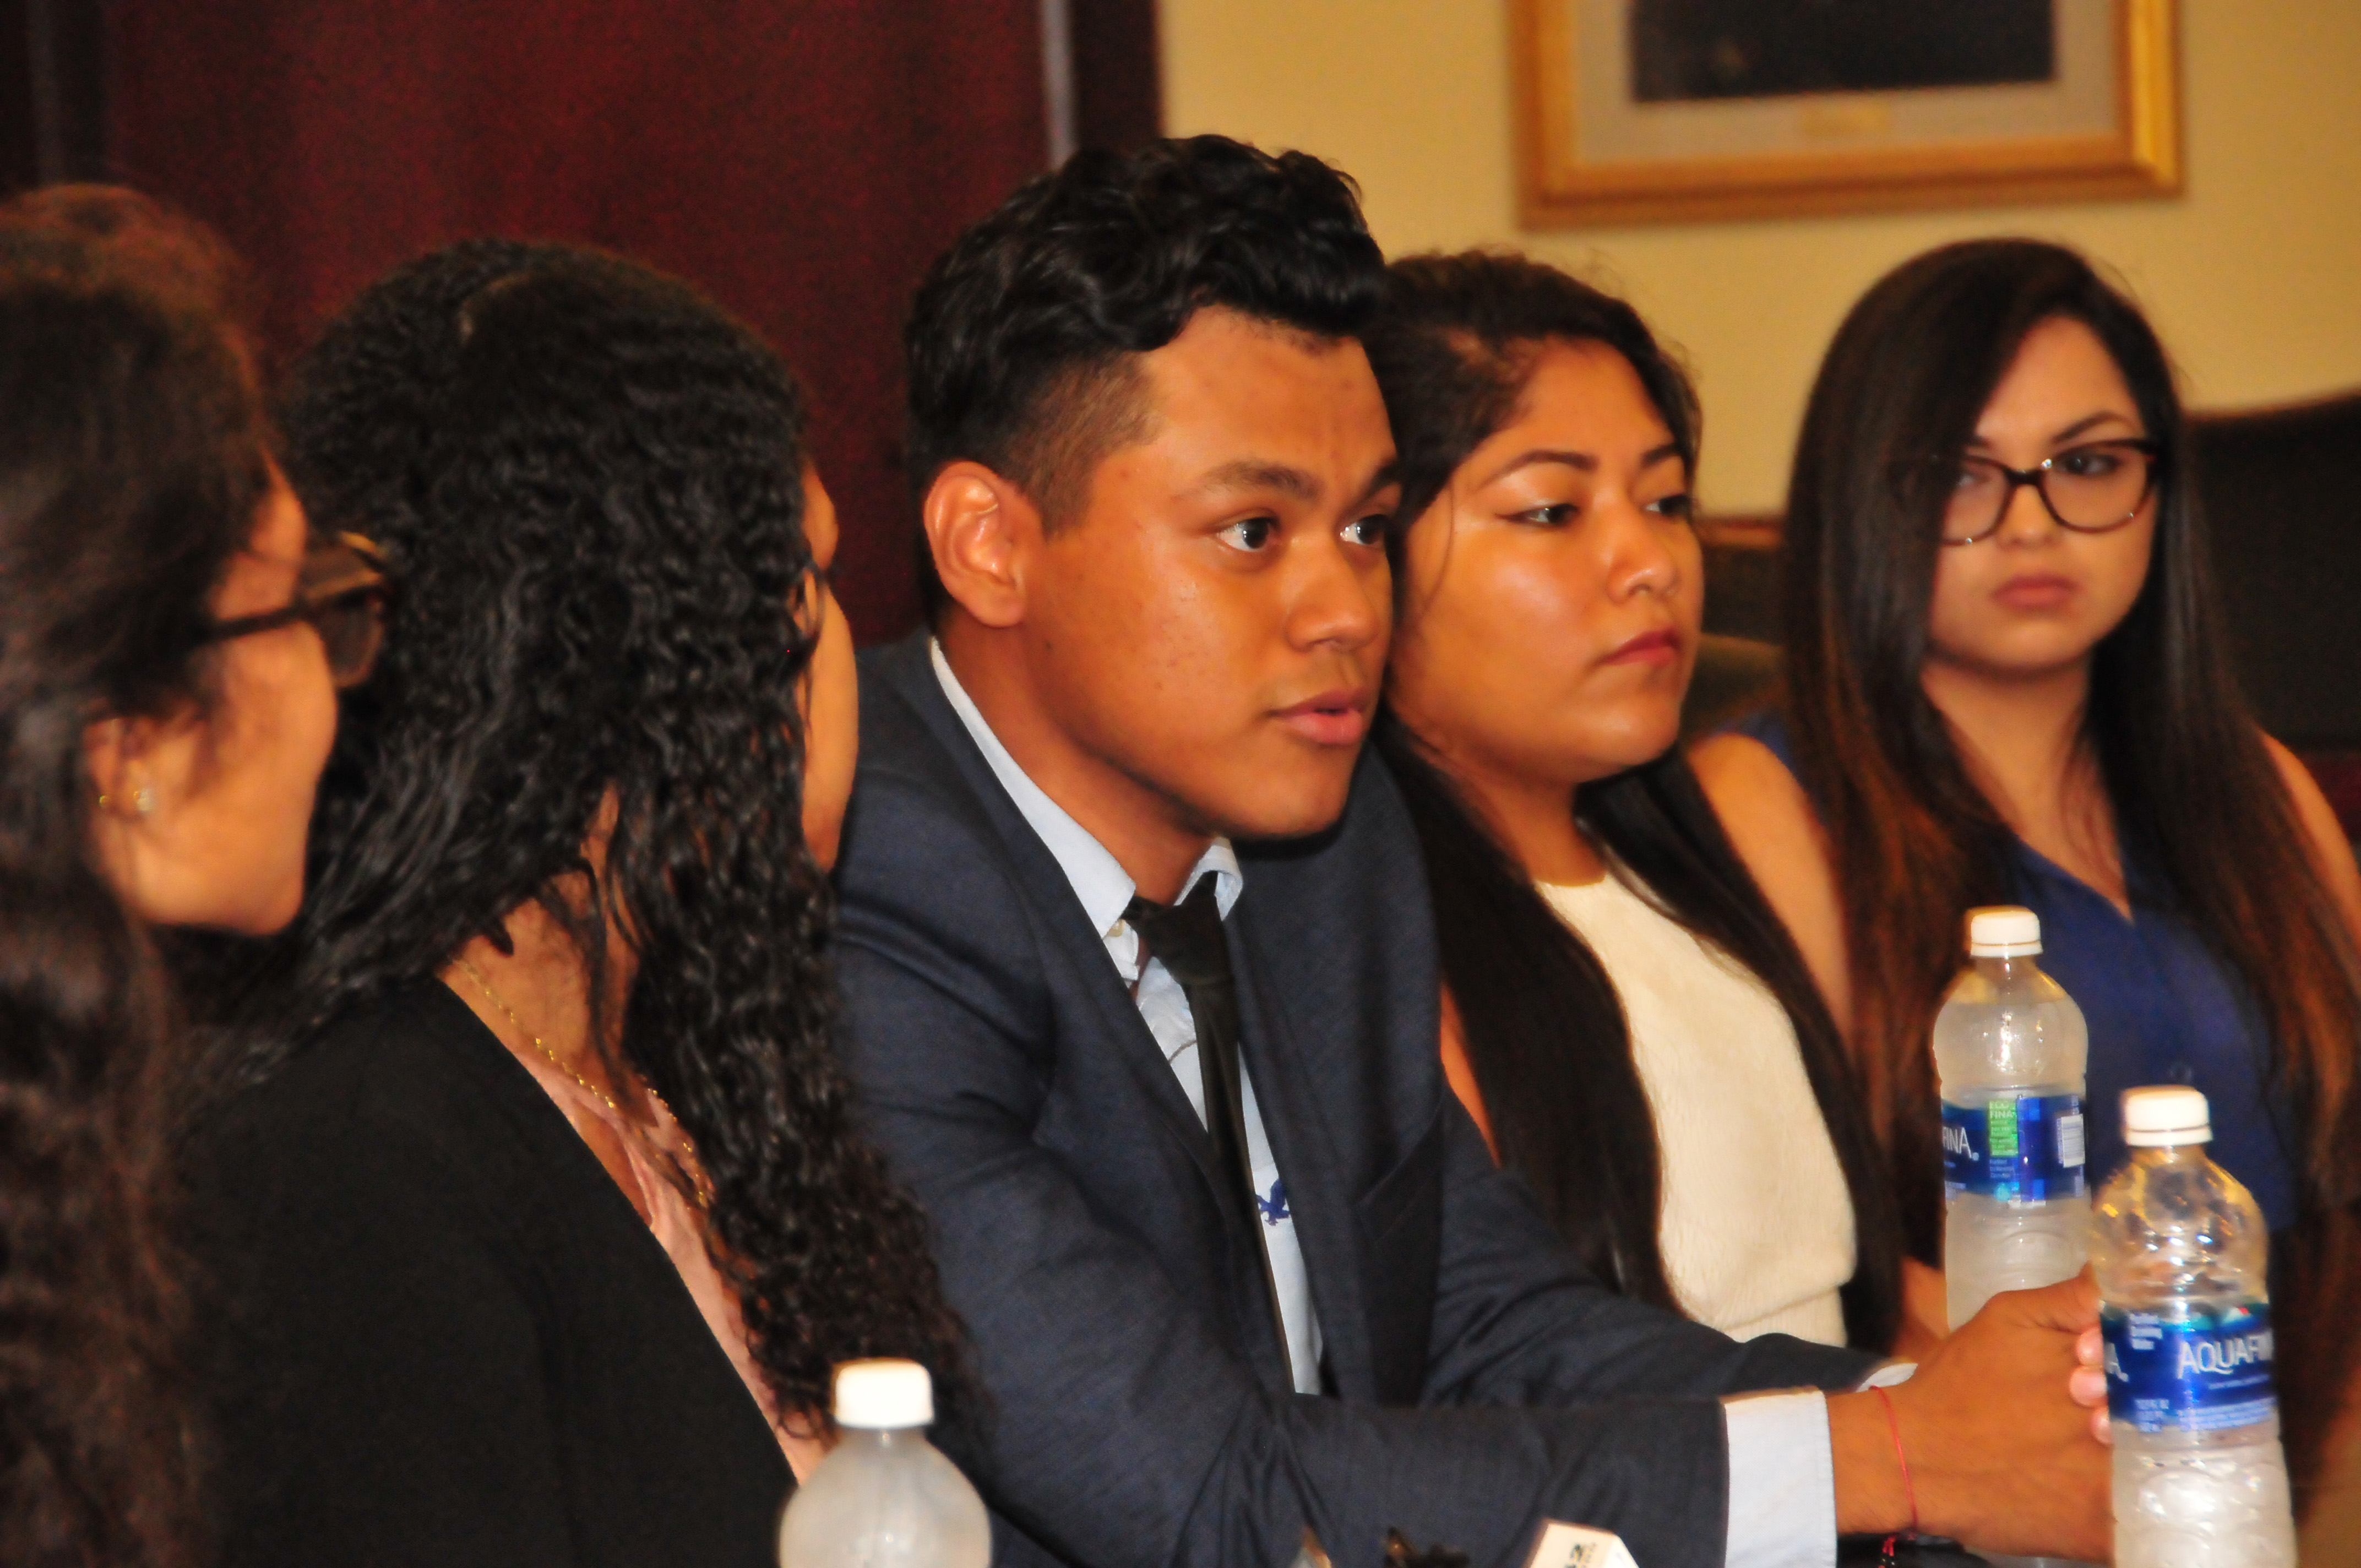 Kevin Gutierrez, a sophomore Dreamer from El Salvador, shares his feelings about being a Dreamer. He is quoted at the beginning of the below statement from Provost Tony Allen.